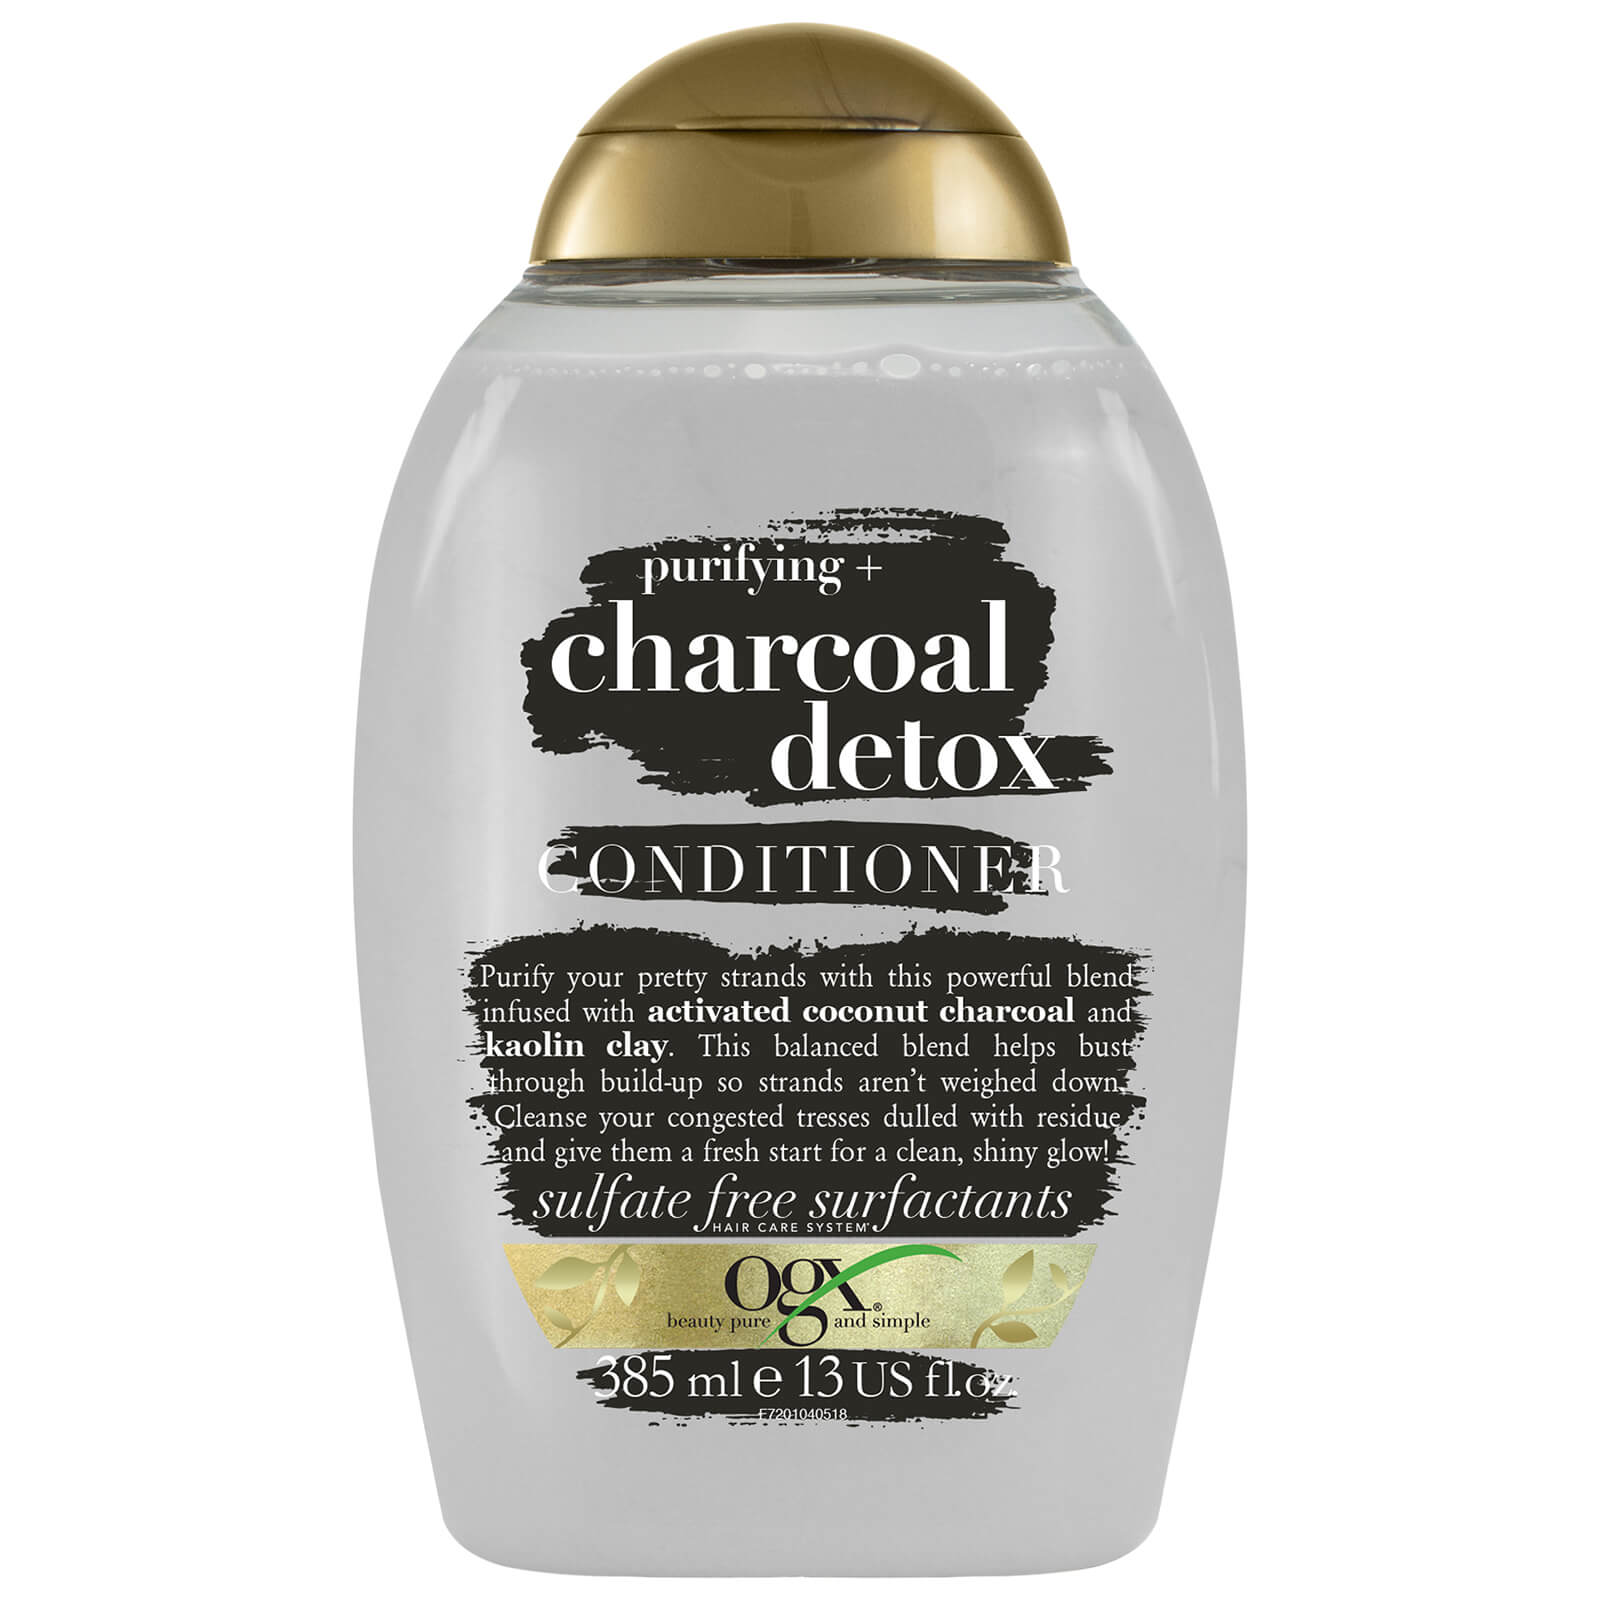 Купить OGX Purifying+ Charcoal Detox Conditioner 385ml